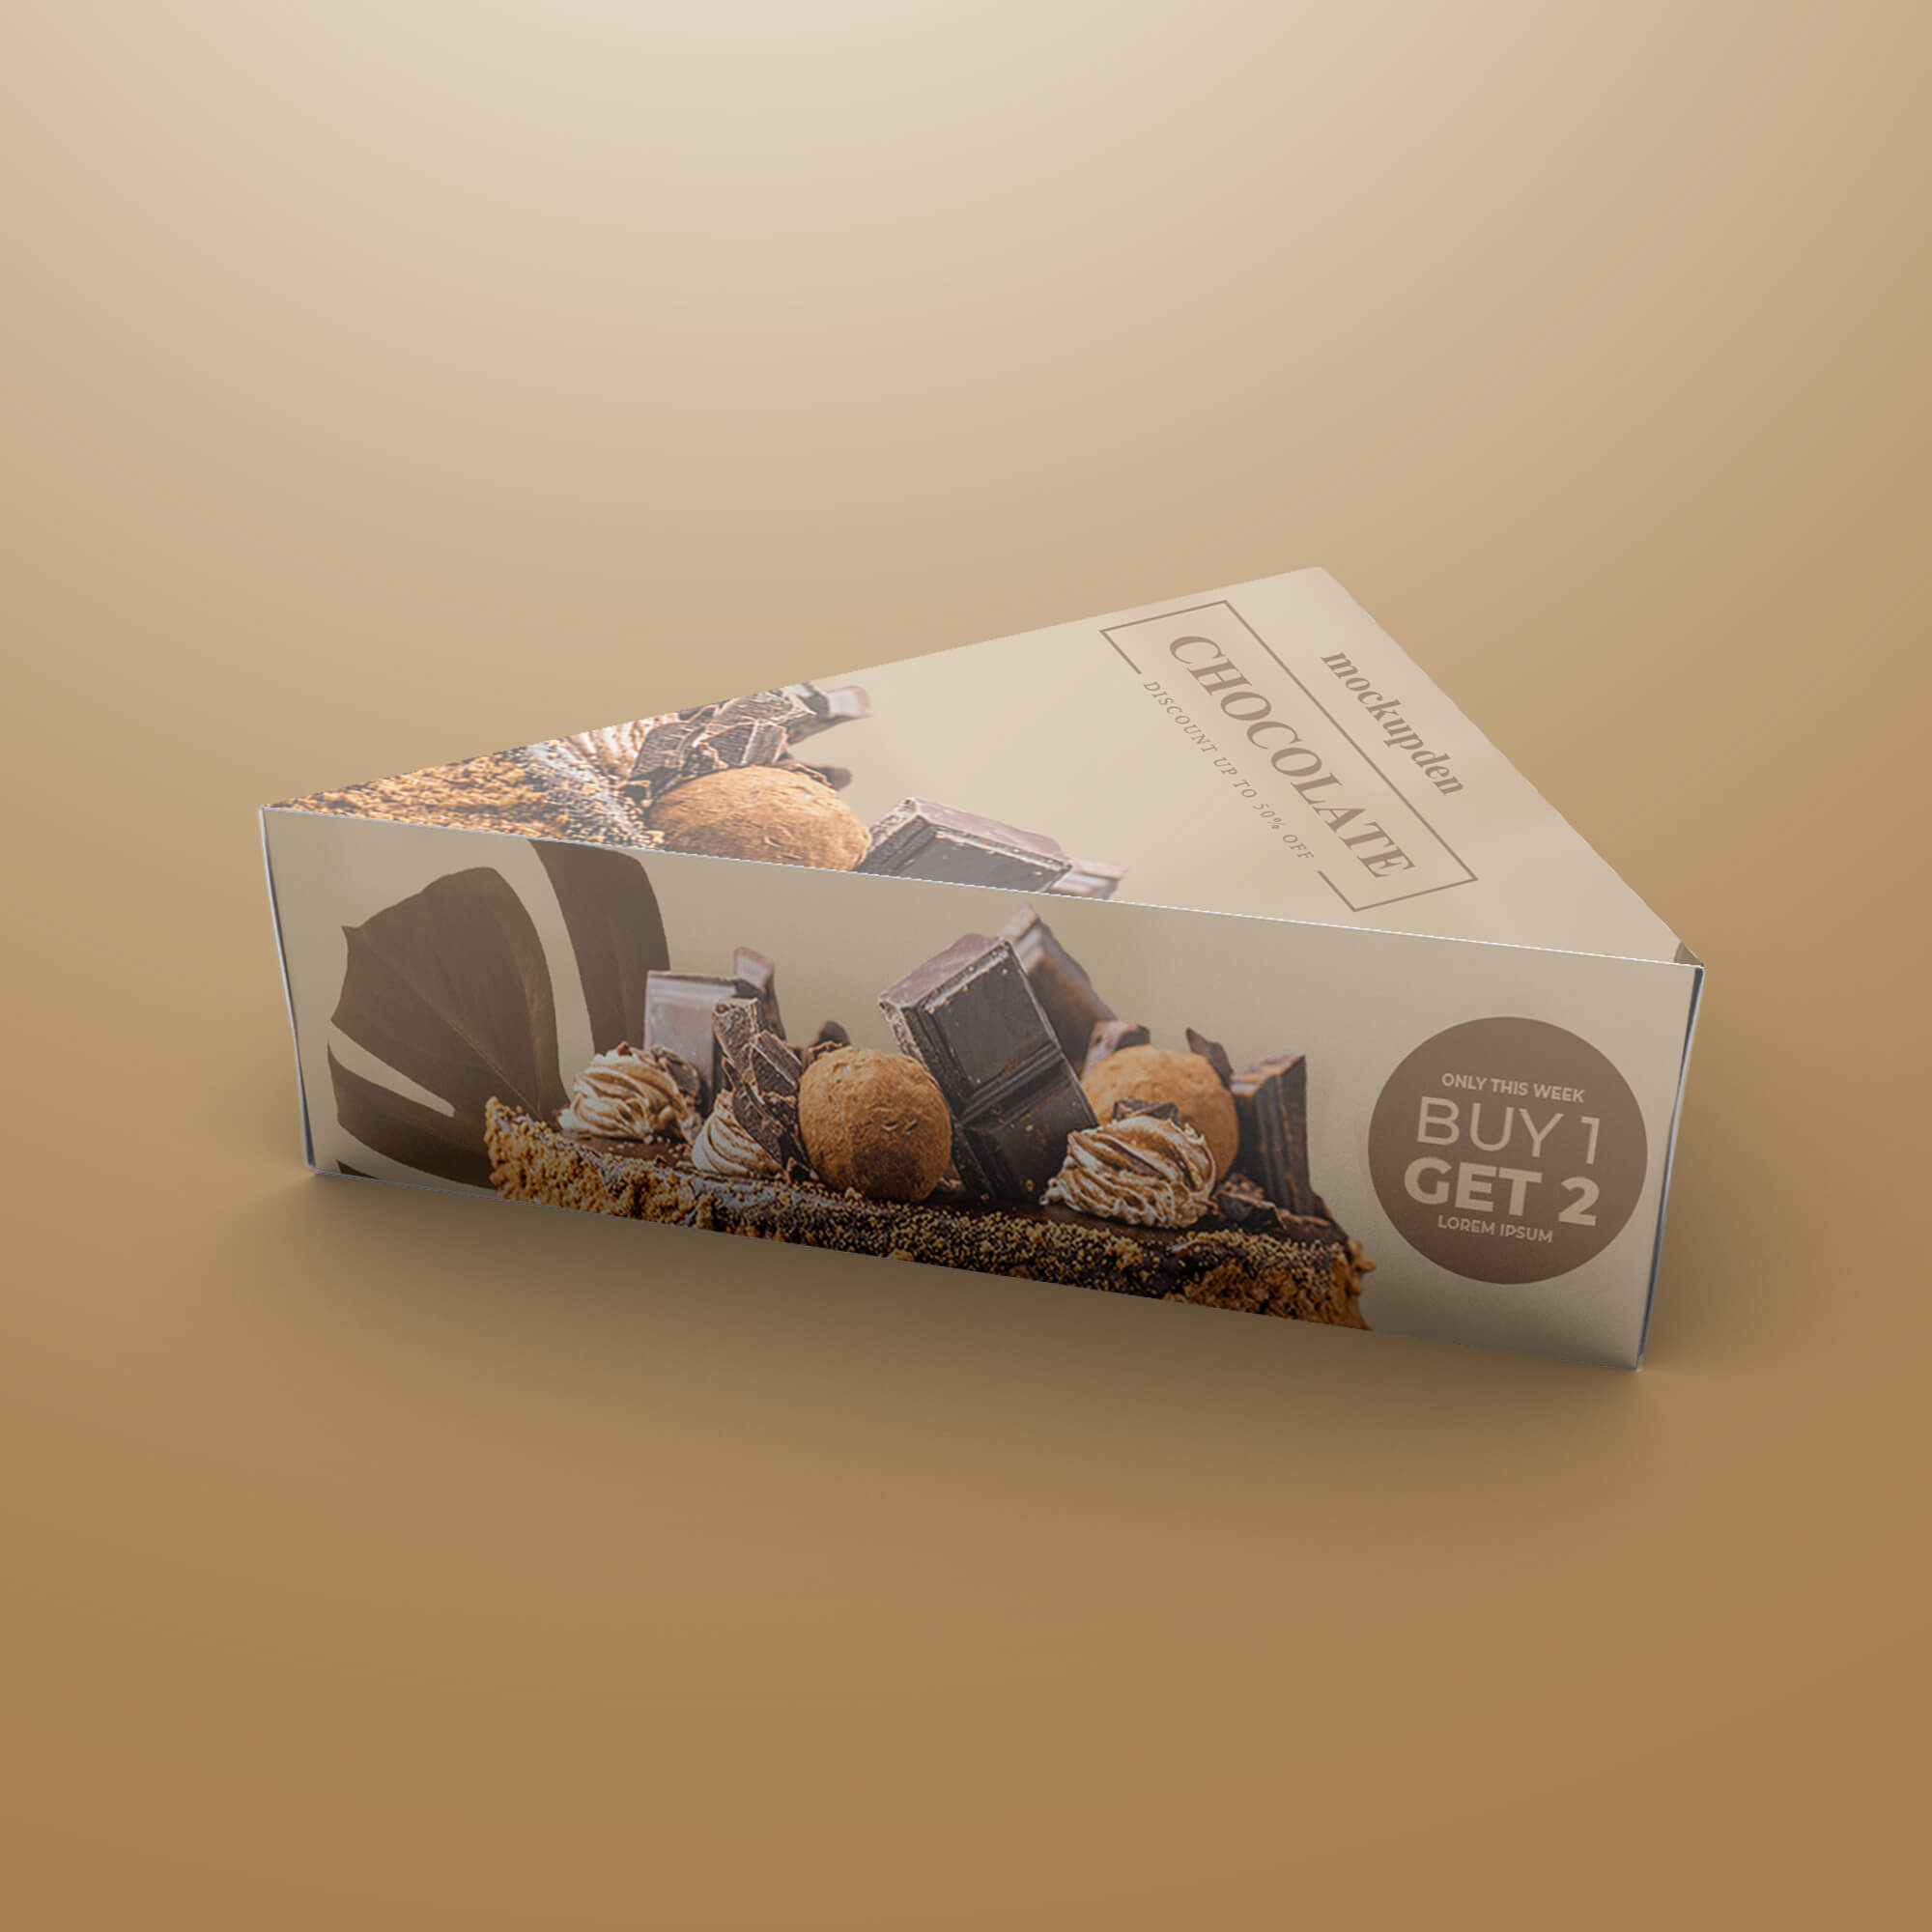 Design Free Pastry Box Mockup PSD Template